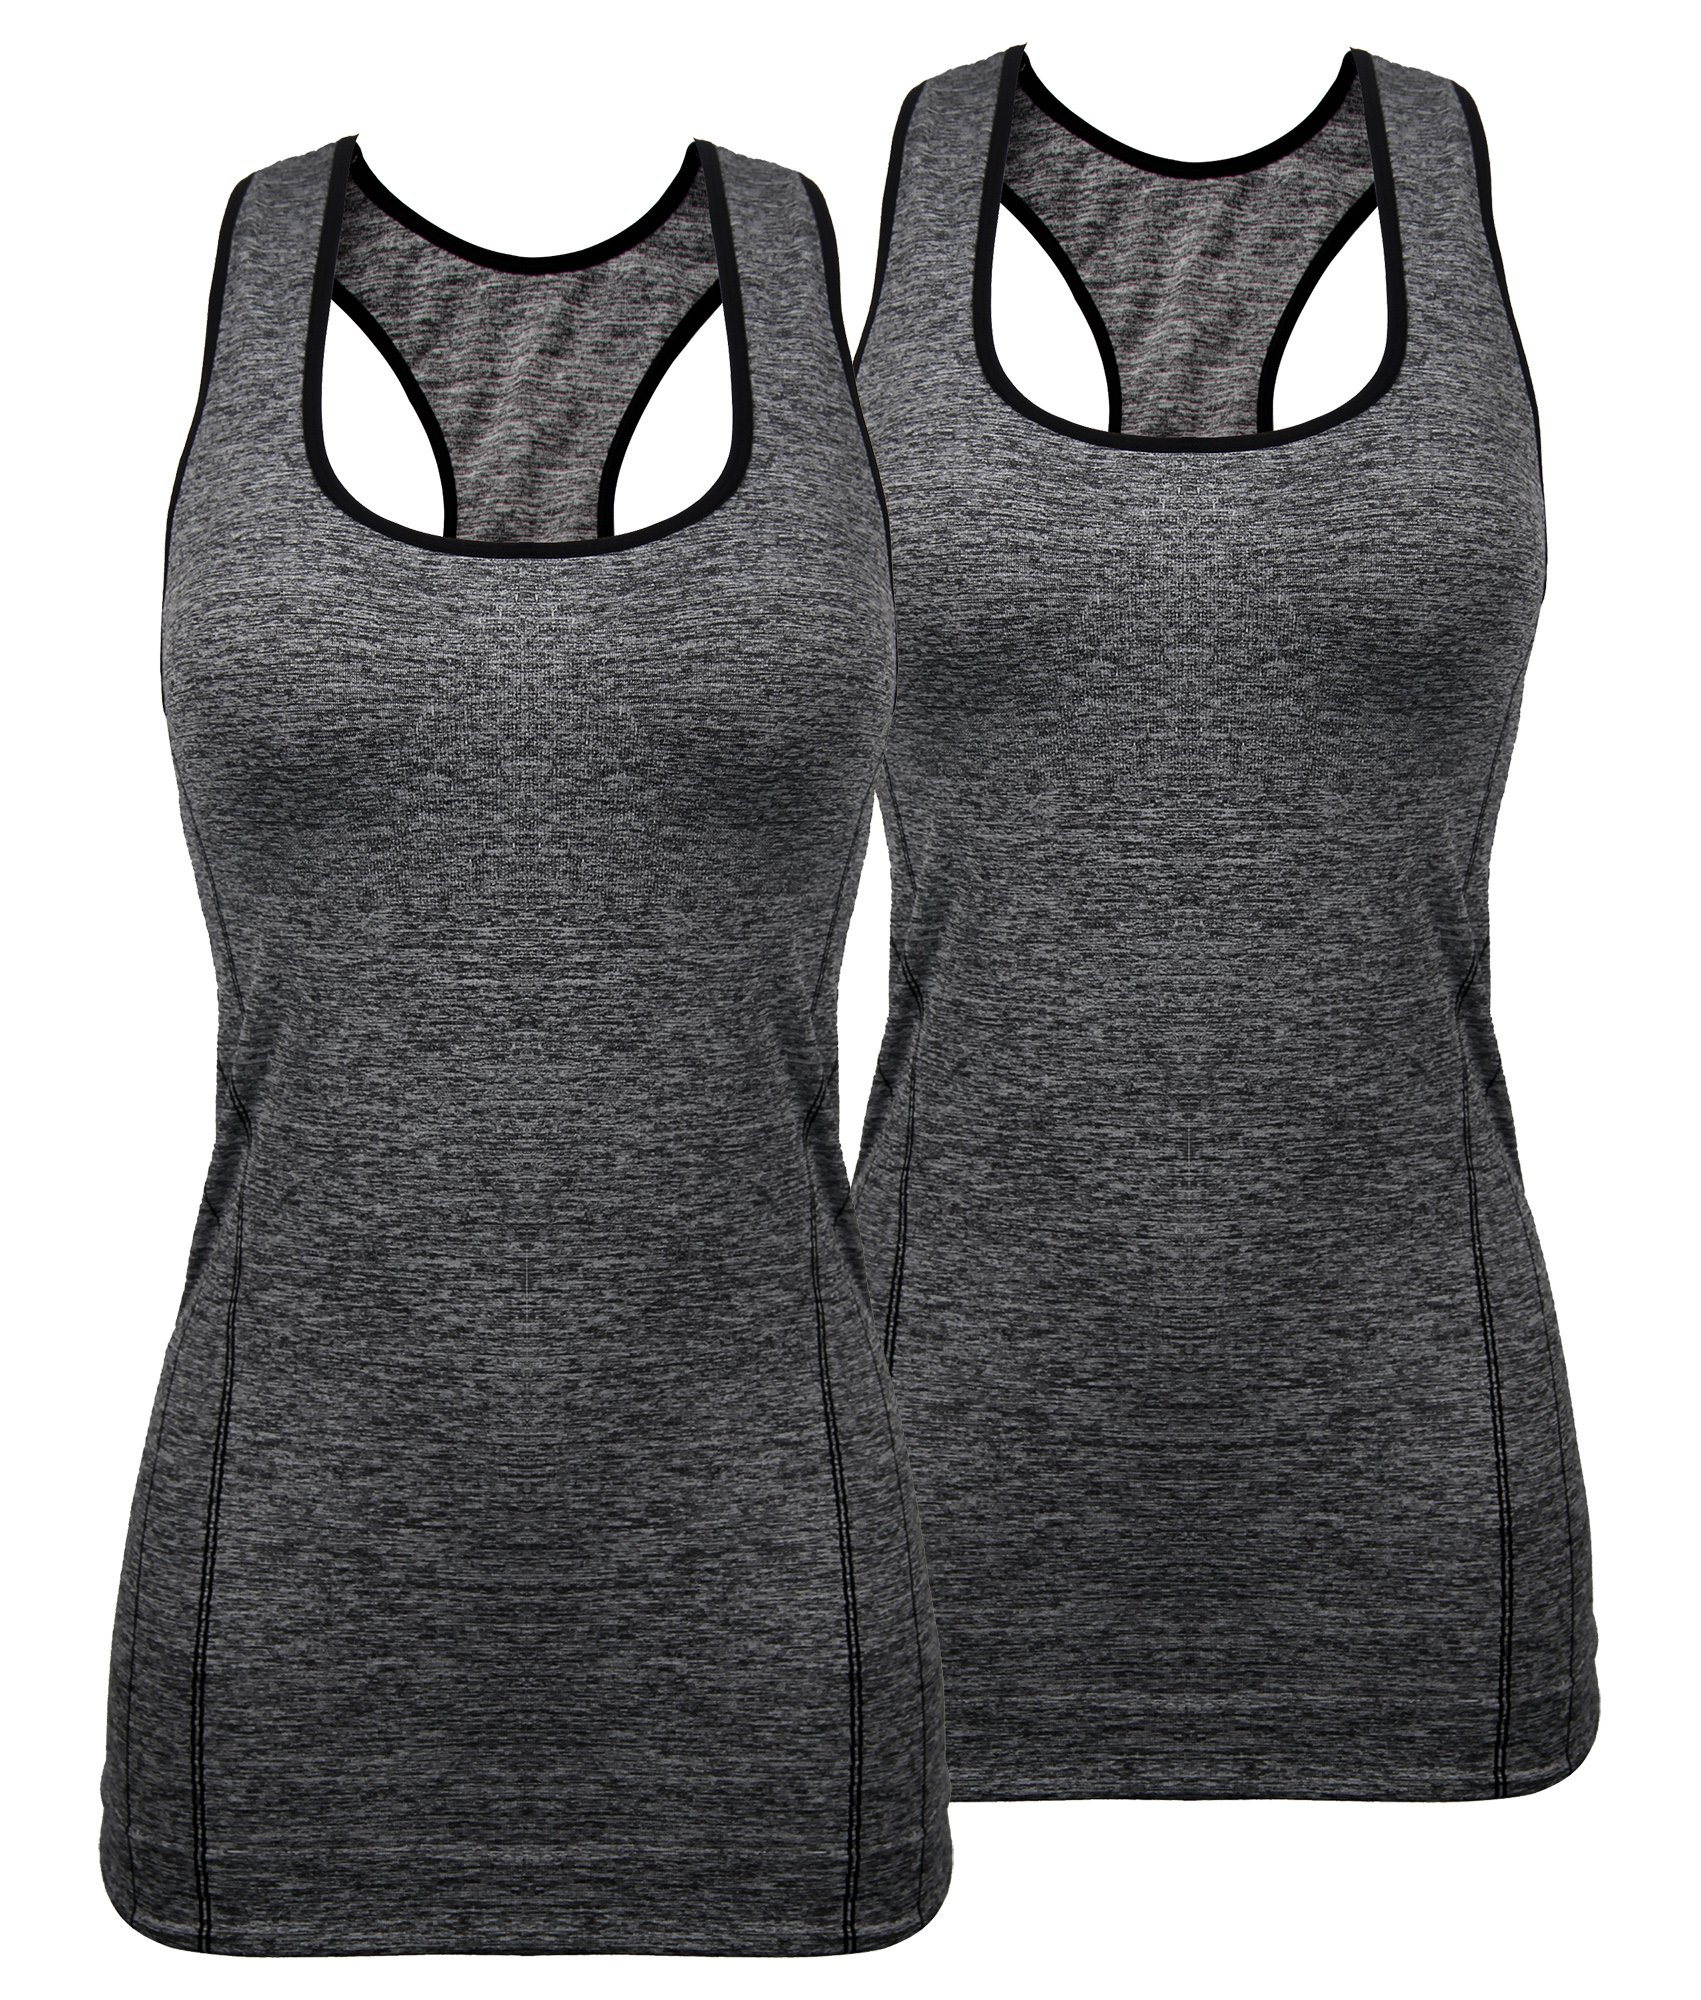 iloveSIA Women's Sports Tank Top High Impact Racerback Workout Yoga Tank Top Pack of 2